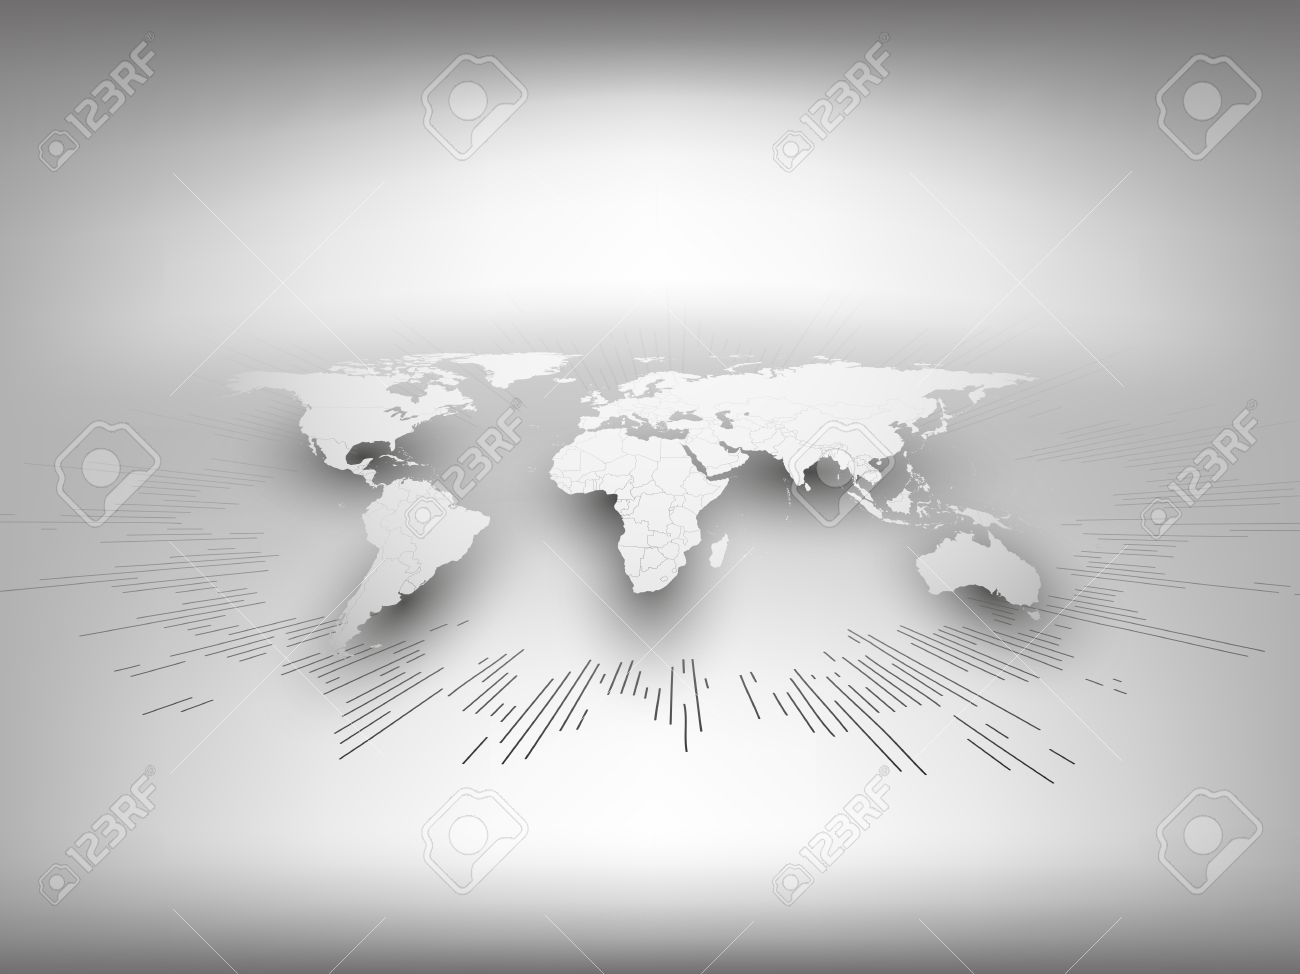 World map template in perspective on gray background for business world map template in perspective on gray background for business or website design stock vector gumiabroncs Choice Image